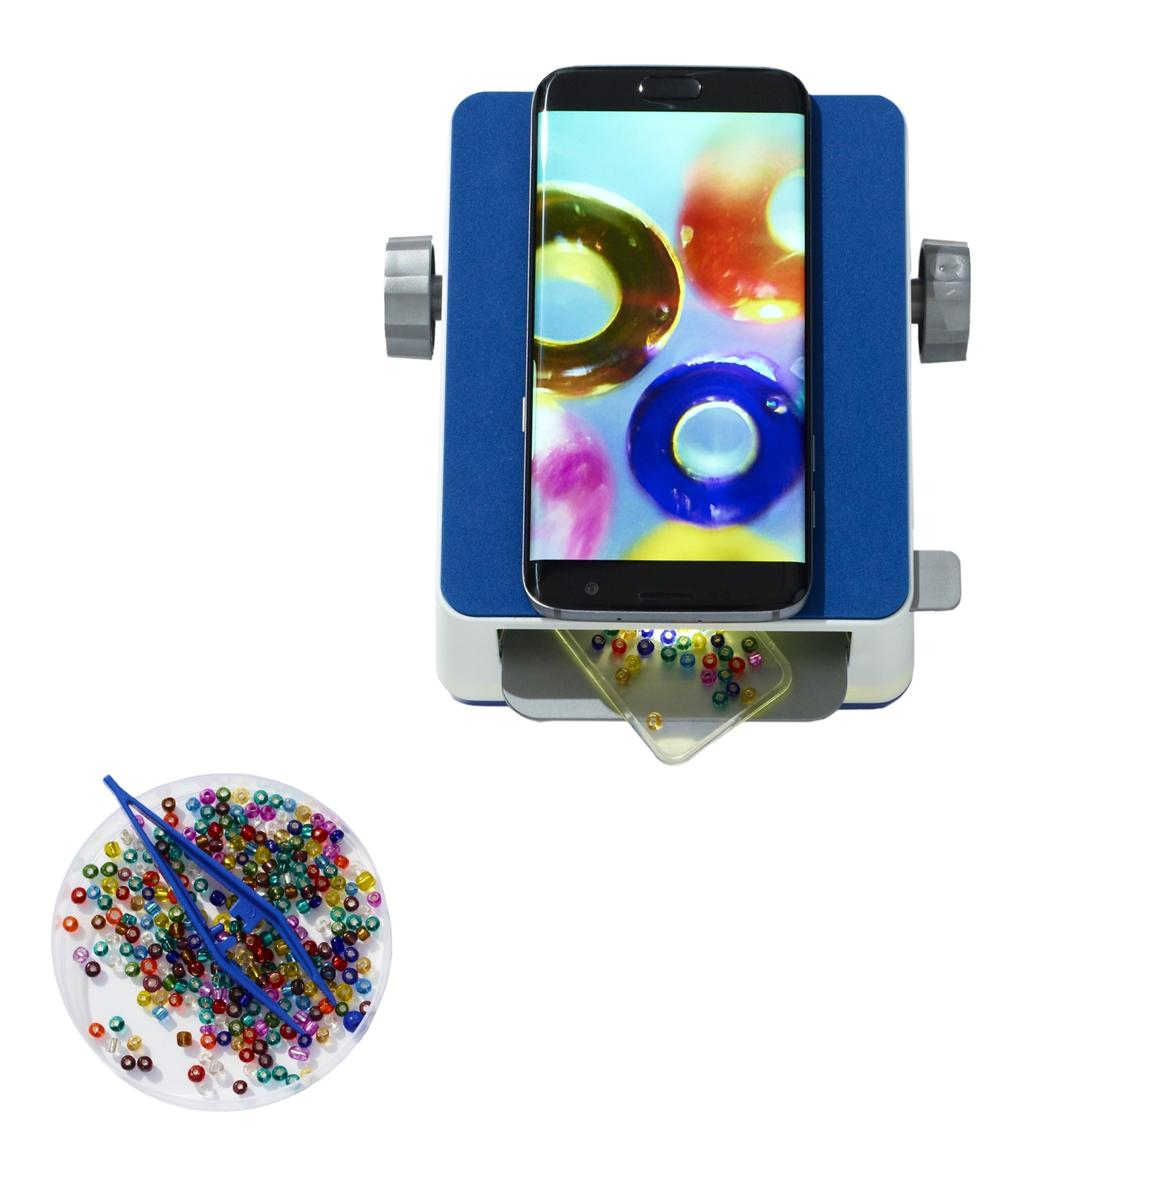 2016 Toys of the Year Ravensburger Smartscope